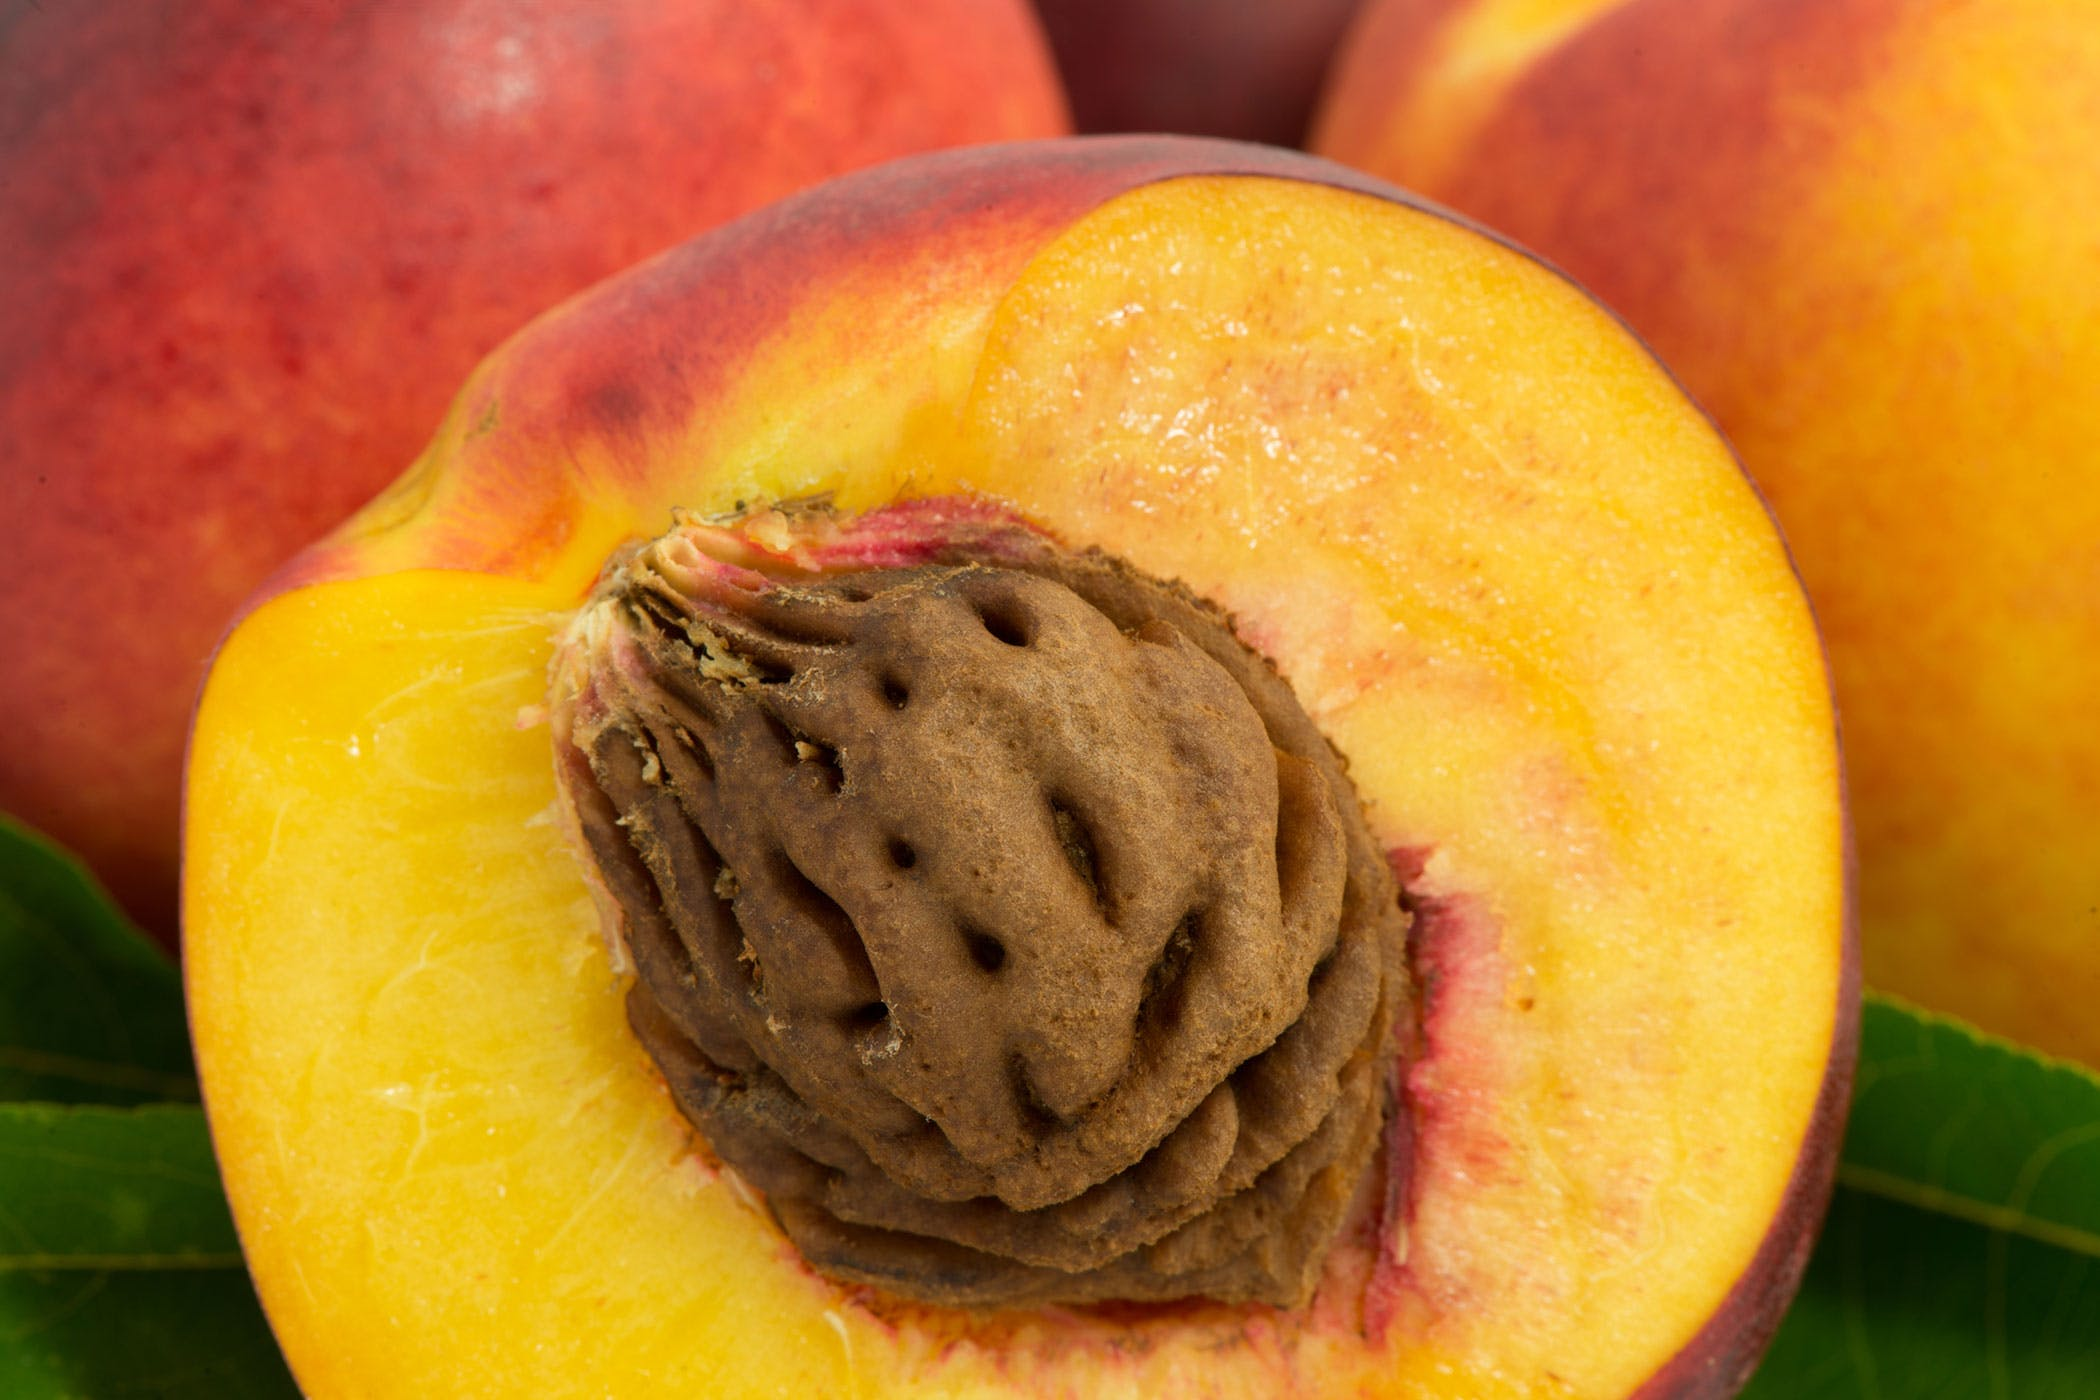 Peach Pits Poisoning in Dogs